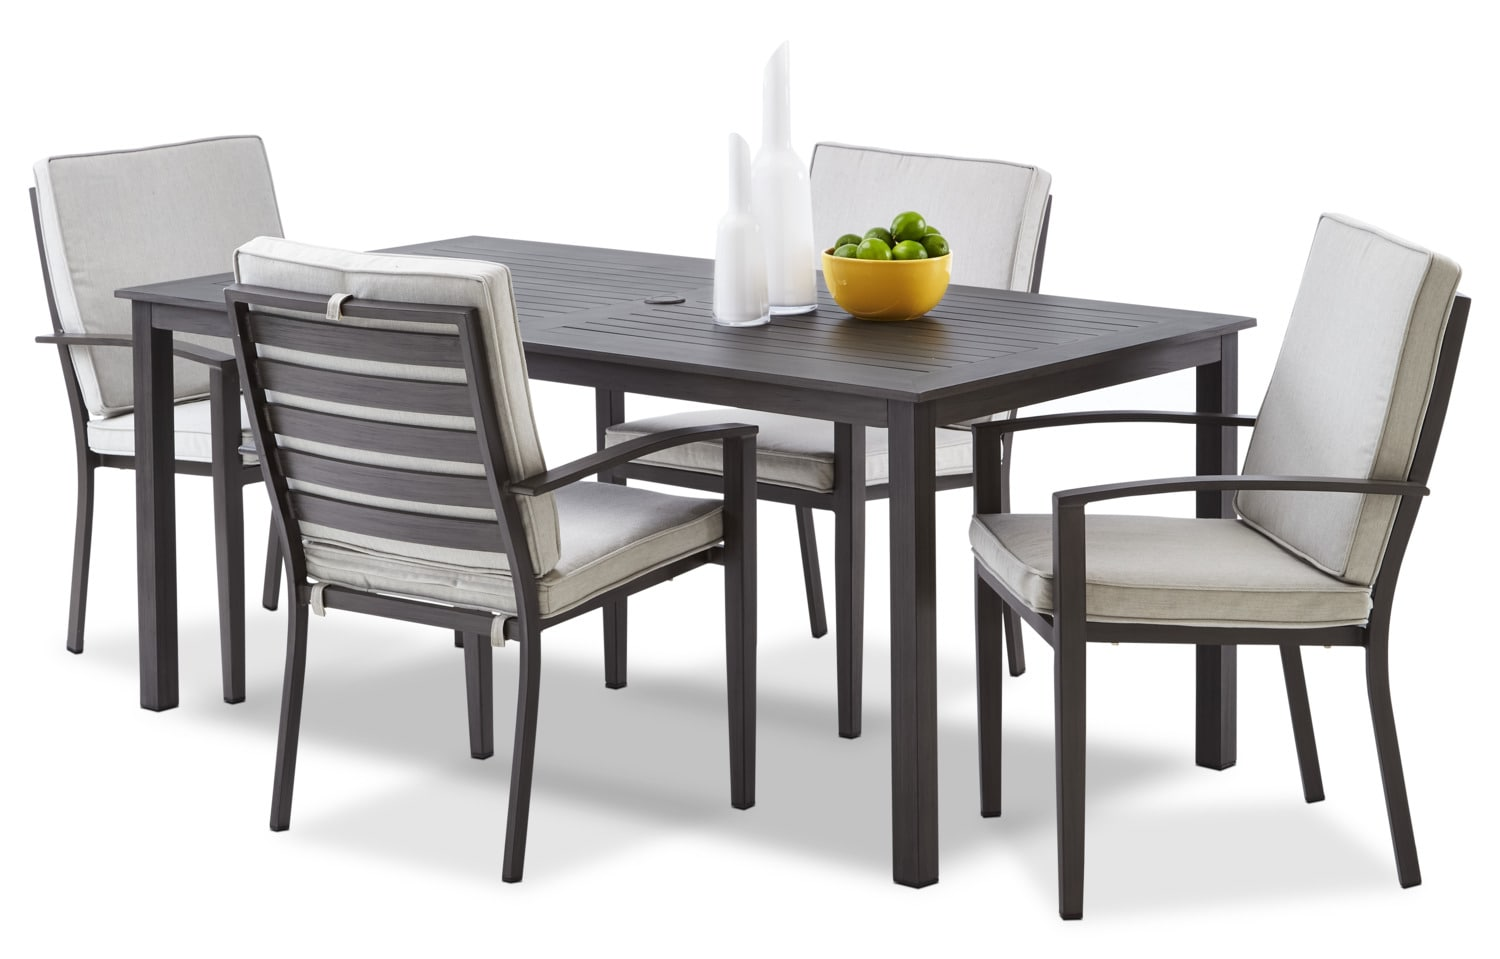 Grenada 5-Piece Outdoor Dinette - Grey